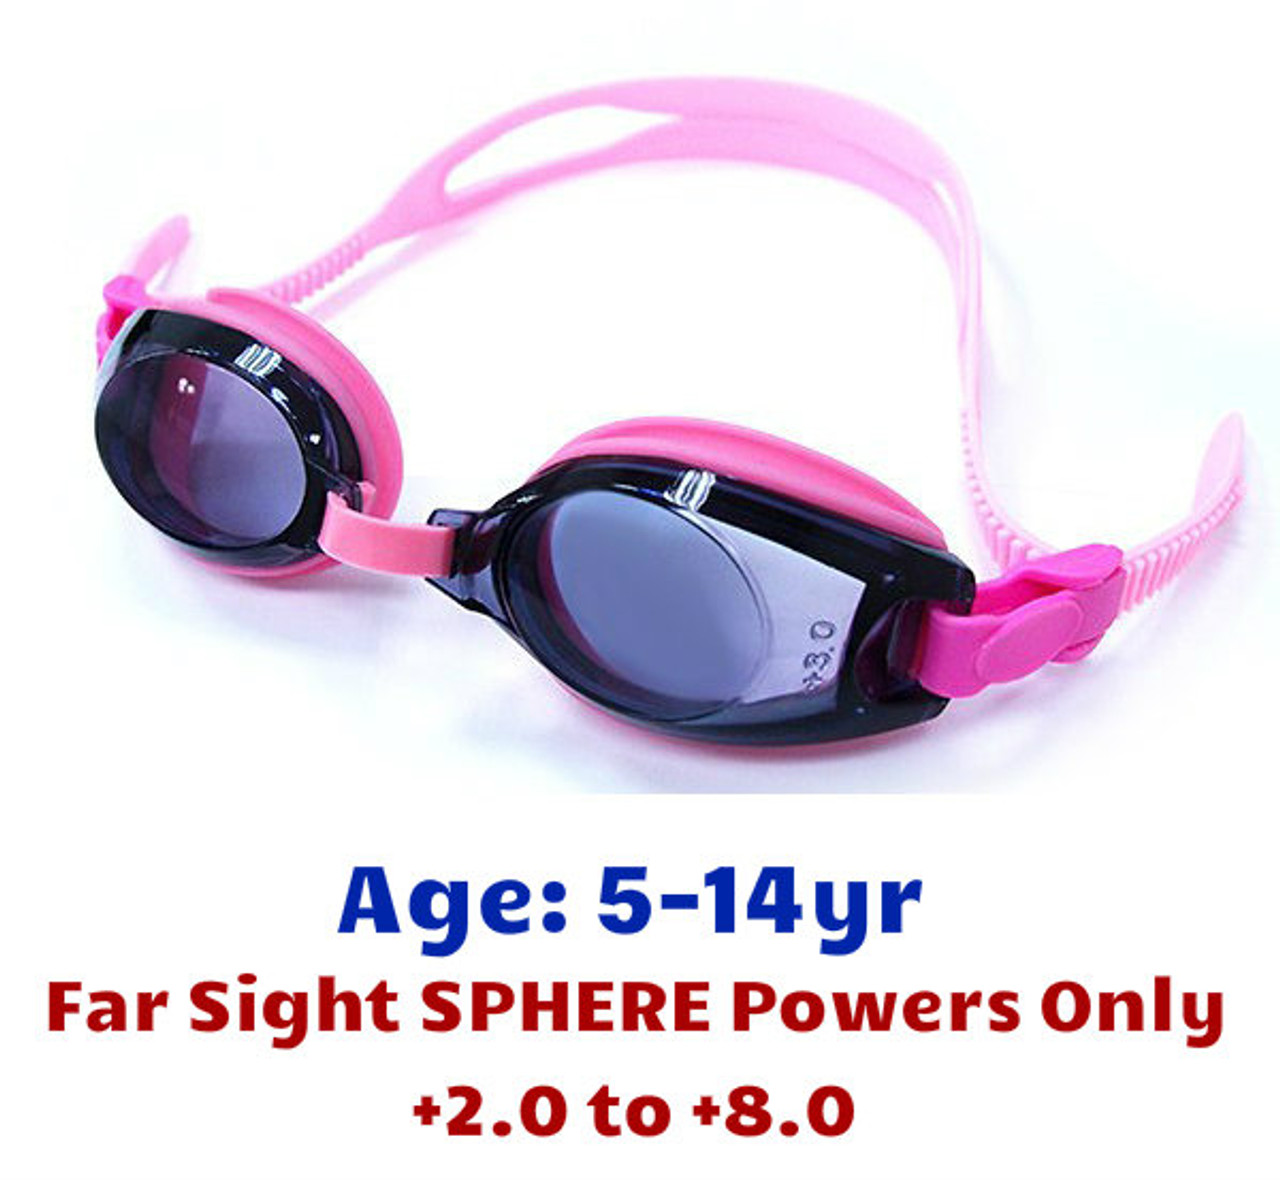 d018e2e2b7 Pink Kids Prescription Swim Goggles with Farsight Power Lenses (Dark Grey Tinted  Lenses)